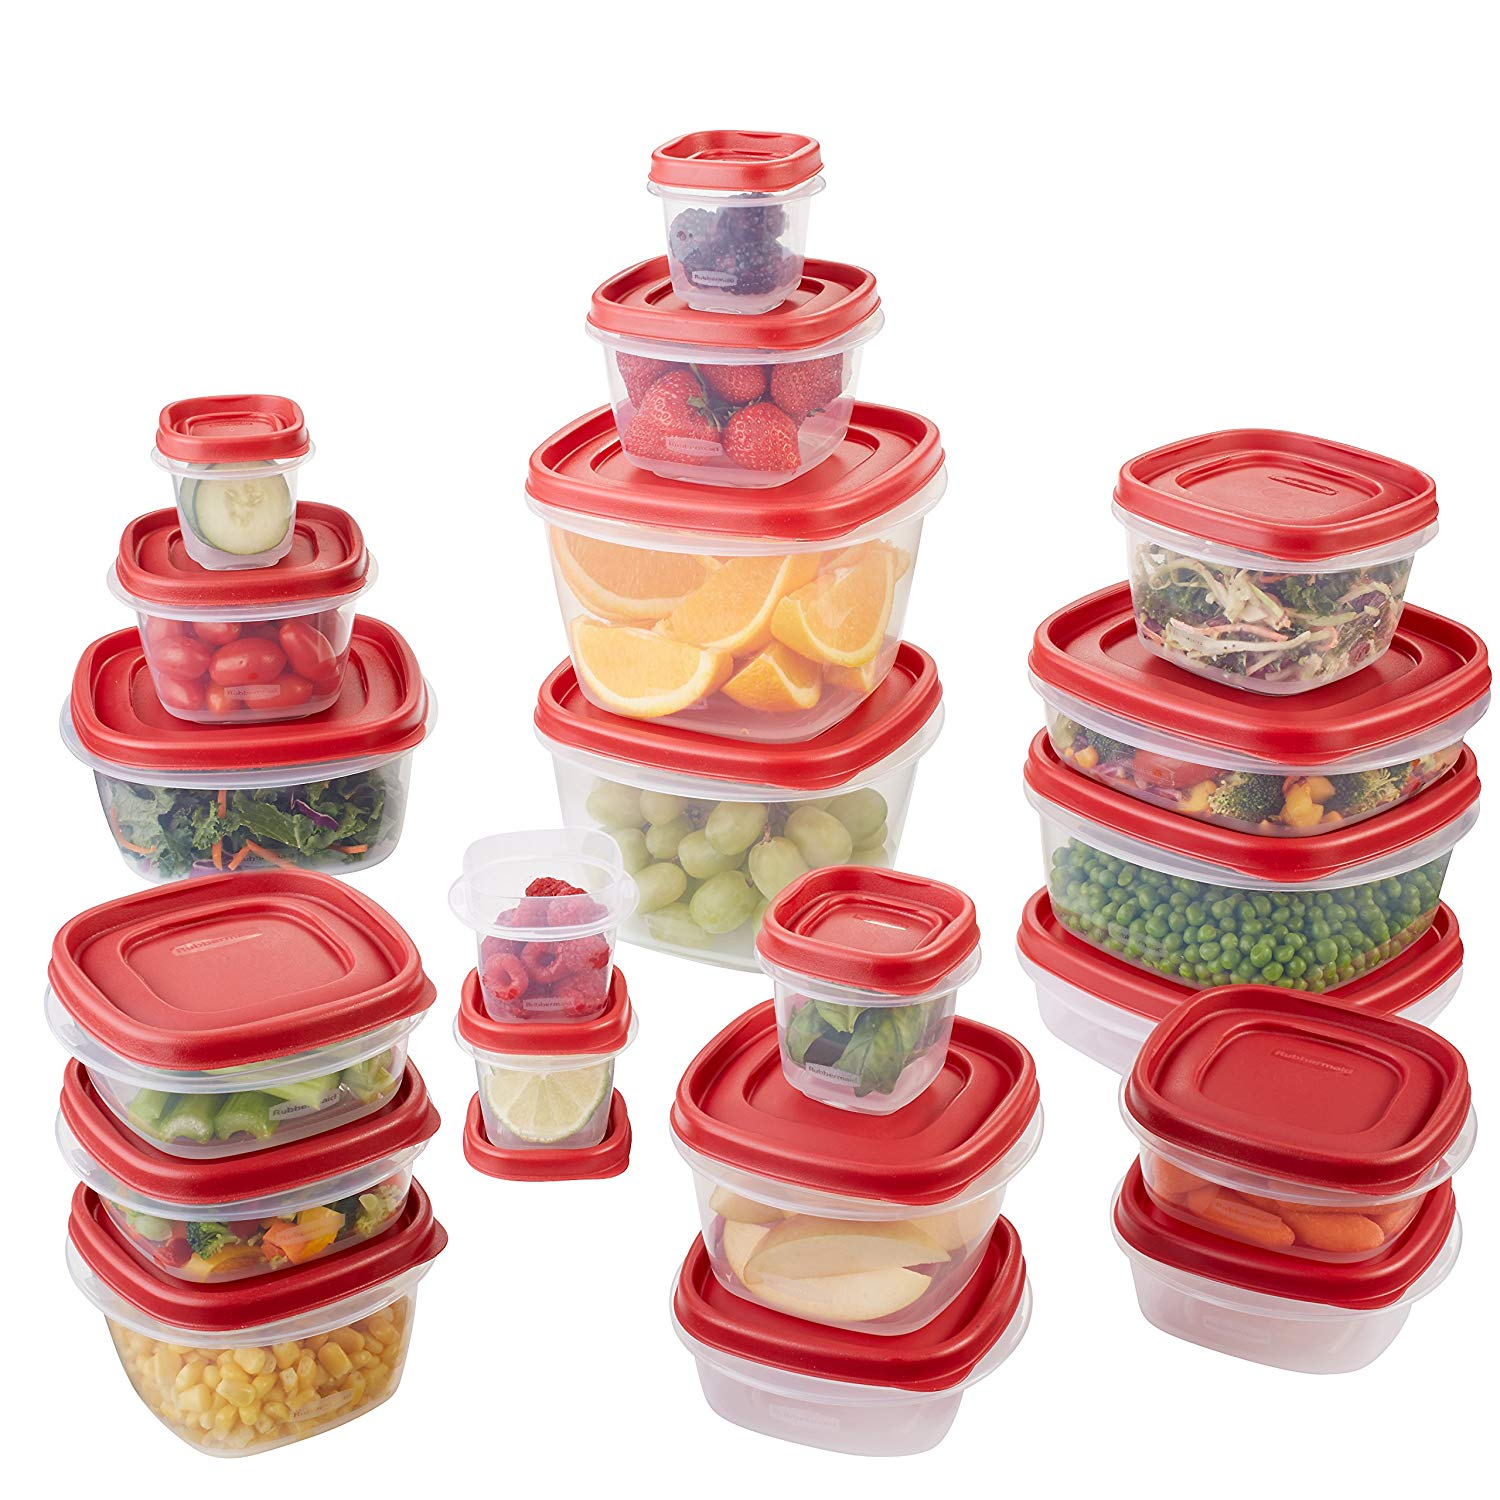 rubbermaid-containers-amazon